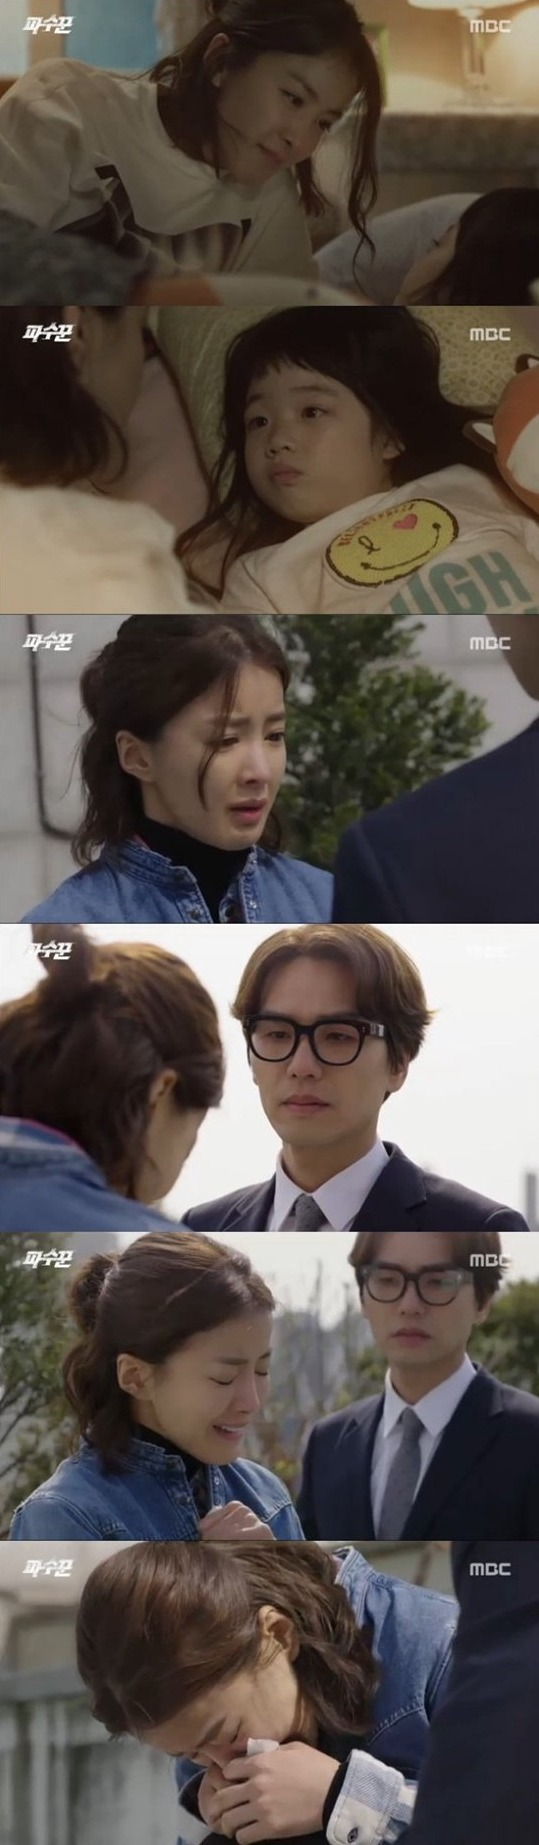 [Spoiler] Added episodes 3 and 4 captures for the Korean drama 'Lookout'